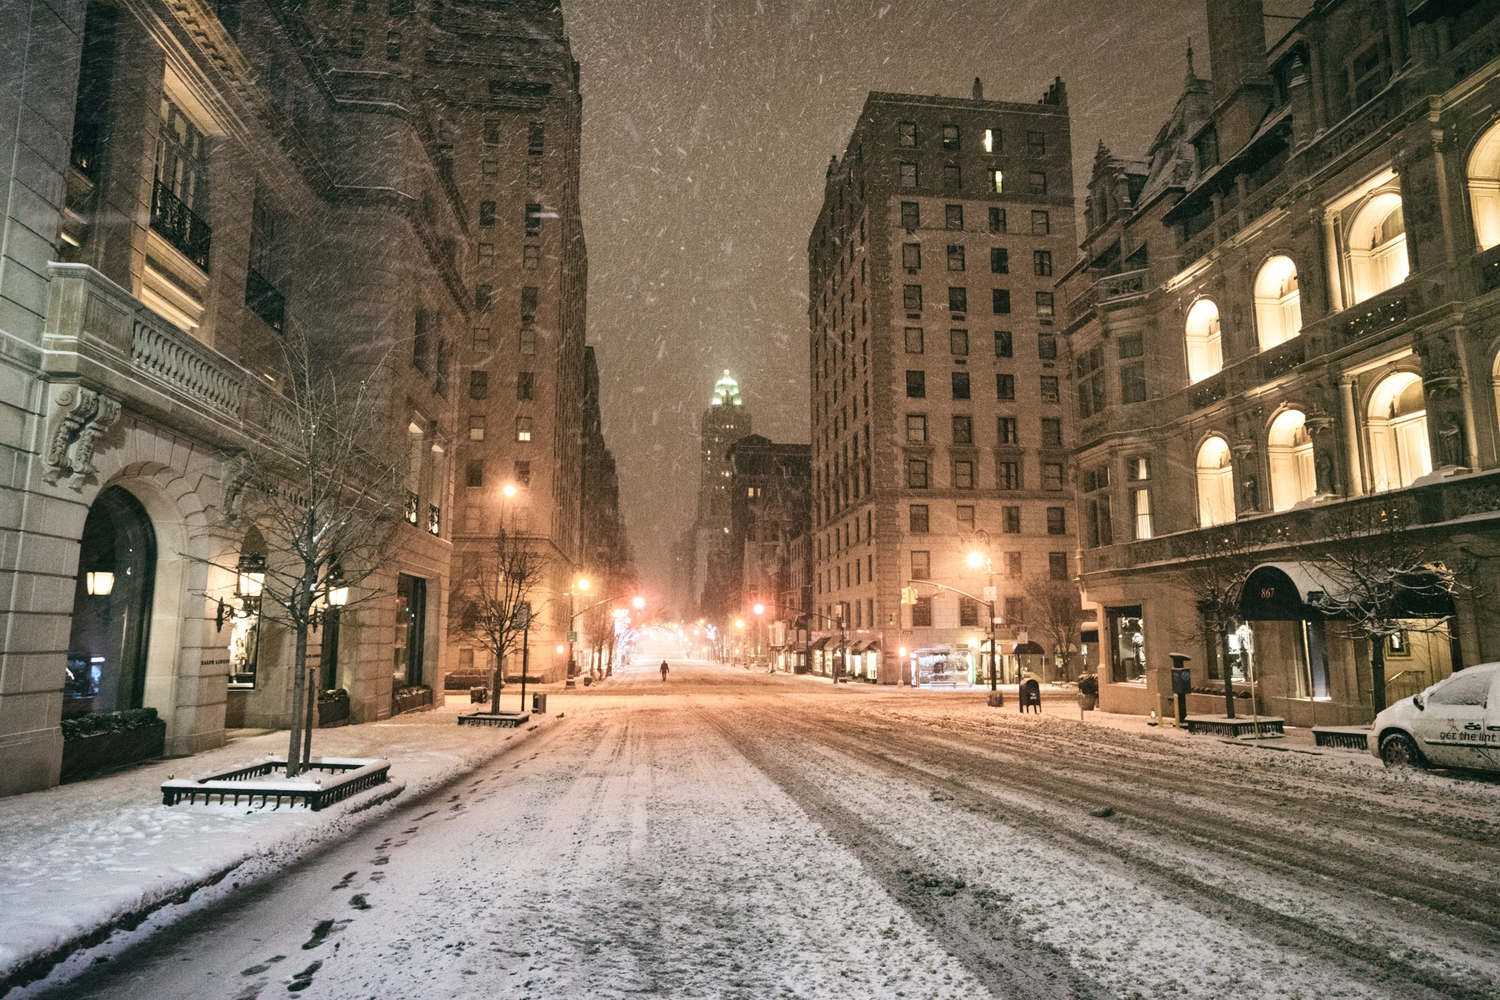 "New York City - Snow - Winter Storm Juno - Madison Avenue Empt | Juno: The first snowstorm of 2015 in New York City.  ---  (Note: My <a href=""http://www.amazon.com/gp/product/1440339589/ref=as_li_tl?ie=UTF8&camp=1789&creative=9325&creativeASIN=1440339589&linkCode=as2&tag=nyththle0e-20&linkId=ER6GYT5FRYNMEPLF"" rel=""nofollow"">New York photography book</a> released worldwide in stores/online recently and has photos similar to this  [full info below])  ---  I have been photographing New York City during snowstorms at night for the past 5 years. When it comes to experiencing <a href=""http://nythroughthelens.com/tagged/snow"" rel=""nofollow"">New York City in the snow</a>, I relish the challenge. The more gusty, snowy, and brutal the storm, the more of a chance that I will be out in it traipsing around New York City with my cameras in tow.  When I heard that the MTA was suspending all transit service (and most vehicles) at 11 pm, I made the decision to take the train up to the Upper East Side prior to 11 pm to deposit myself up there with the intention of walking from the Upper East Side to Times Square and then walking the several miles back to the Lower East Side (whew!!).  The streets were eerily empty.  Emptier than they are usually at night during snowfall. Since there was a ban on all vehicles aside from snow plows and emergency services, there were practically no cars at all on the streets. Even taxis were banned from the streets!  I walked in the middle of avenues and streets that are usually teeming with cars.  There was an eerie sense of calm.  It was magical.   ---  This is part of a post that I posted to my NYC photography blog. If you are curious enough to look at the photos there, here is the link to the post:  <a href=""http://nythroughthelens.com/post/109291619025/new-york-city-snow-winter-storm-juno-i"" rel=""nofollow"">New York City - Winter Storm Juno</a>   ----  * As mentioned above - My New York City coffee table book that released in stores/online worldwide recently.   Tons of information about my <a href=""http://www.amazon.com/gp/product/1440339589/ref=as_li_tl?ie=UTF8&camp=1789&creative=9325&creativeASIN=1440339589&linkCode=as2&tag=nyththle0e-20&linkId=ER6GYT5FRYNMEPLF"" rel=""nofollow"">New York photography book</a> with sample pages (including where to order and what stores are carrying it) here:  <a href=""http://nythroughthelens.com/post/92873566010/ny-through-the-lens-the-book-i-am-super"" rel=""nofollow"">NY Through The Lens: A New York Coffee Table Book</a> ---   View my New York City photography at my website <a href=""http://nythroughthelens.com/"" rel=""nofollow"">NY Through The Lens</a>.  View my Travel photography at my travel blog: <a href=""http://travelinglens.me/"" rel=""nofollow"">Traveling Lens</a>.  Interested in my work and have questions about PR and media? Check out my:  <a href=""http://nythroughthelens.com/about"" rel=""nofollow"">About Page</a> 